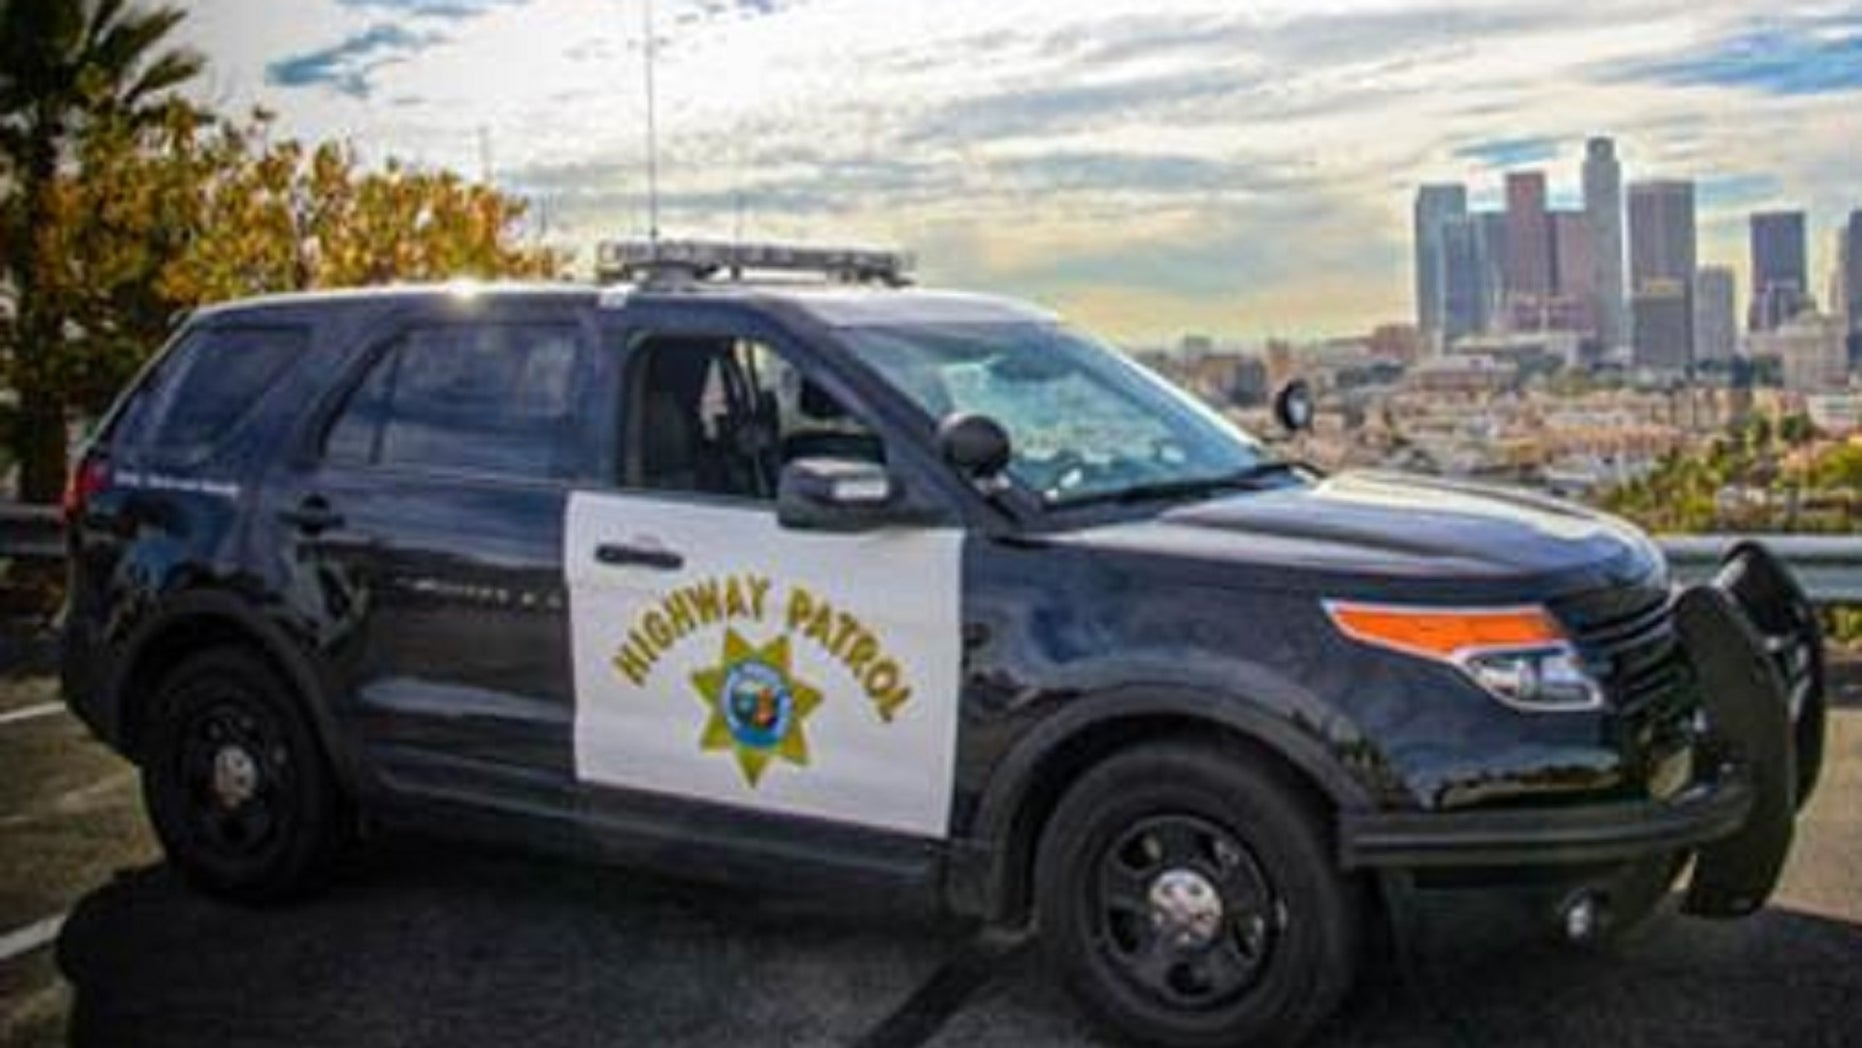 The number of people killed in DUIcrashesin California over the extended New Year's weekend increased over last year's figure, authorities said Wednesday.